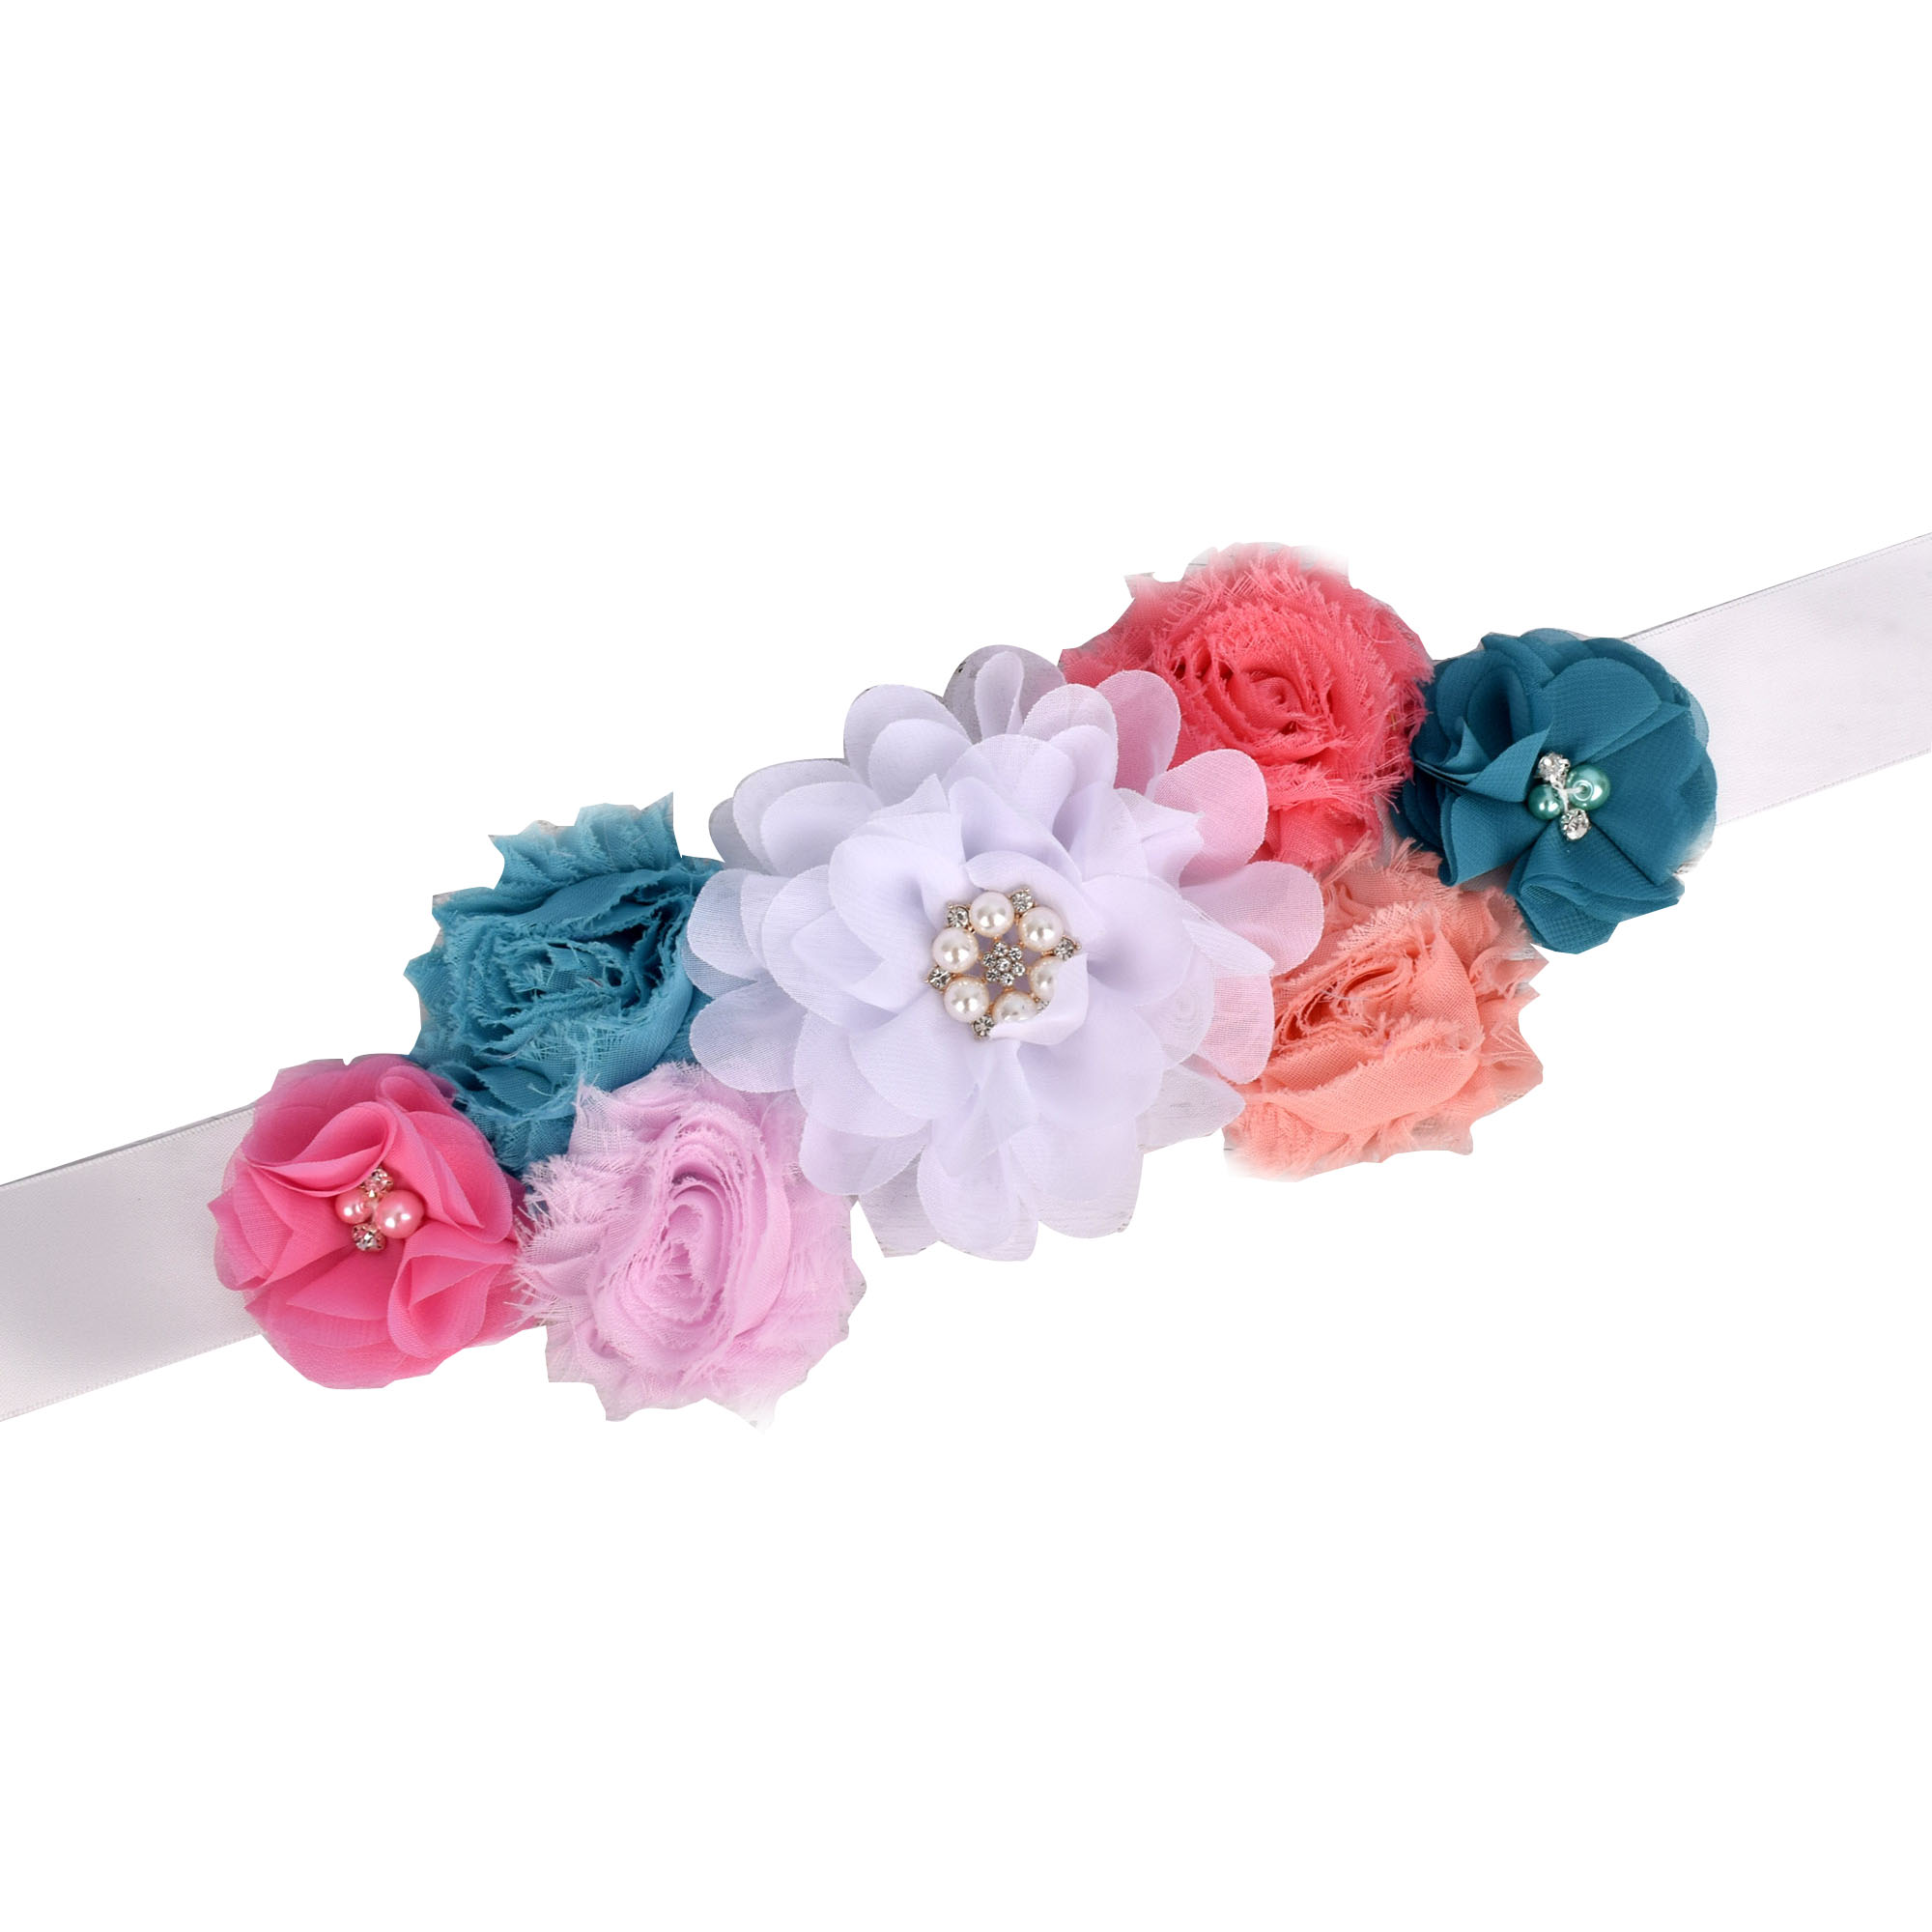 Theeper Maternity Sash Pregnancy Belly Belt Baby Shower Party Flower Sash  Photo Prop Woman Vintage Sash Wedding Fancy Waistband